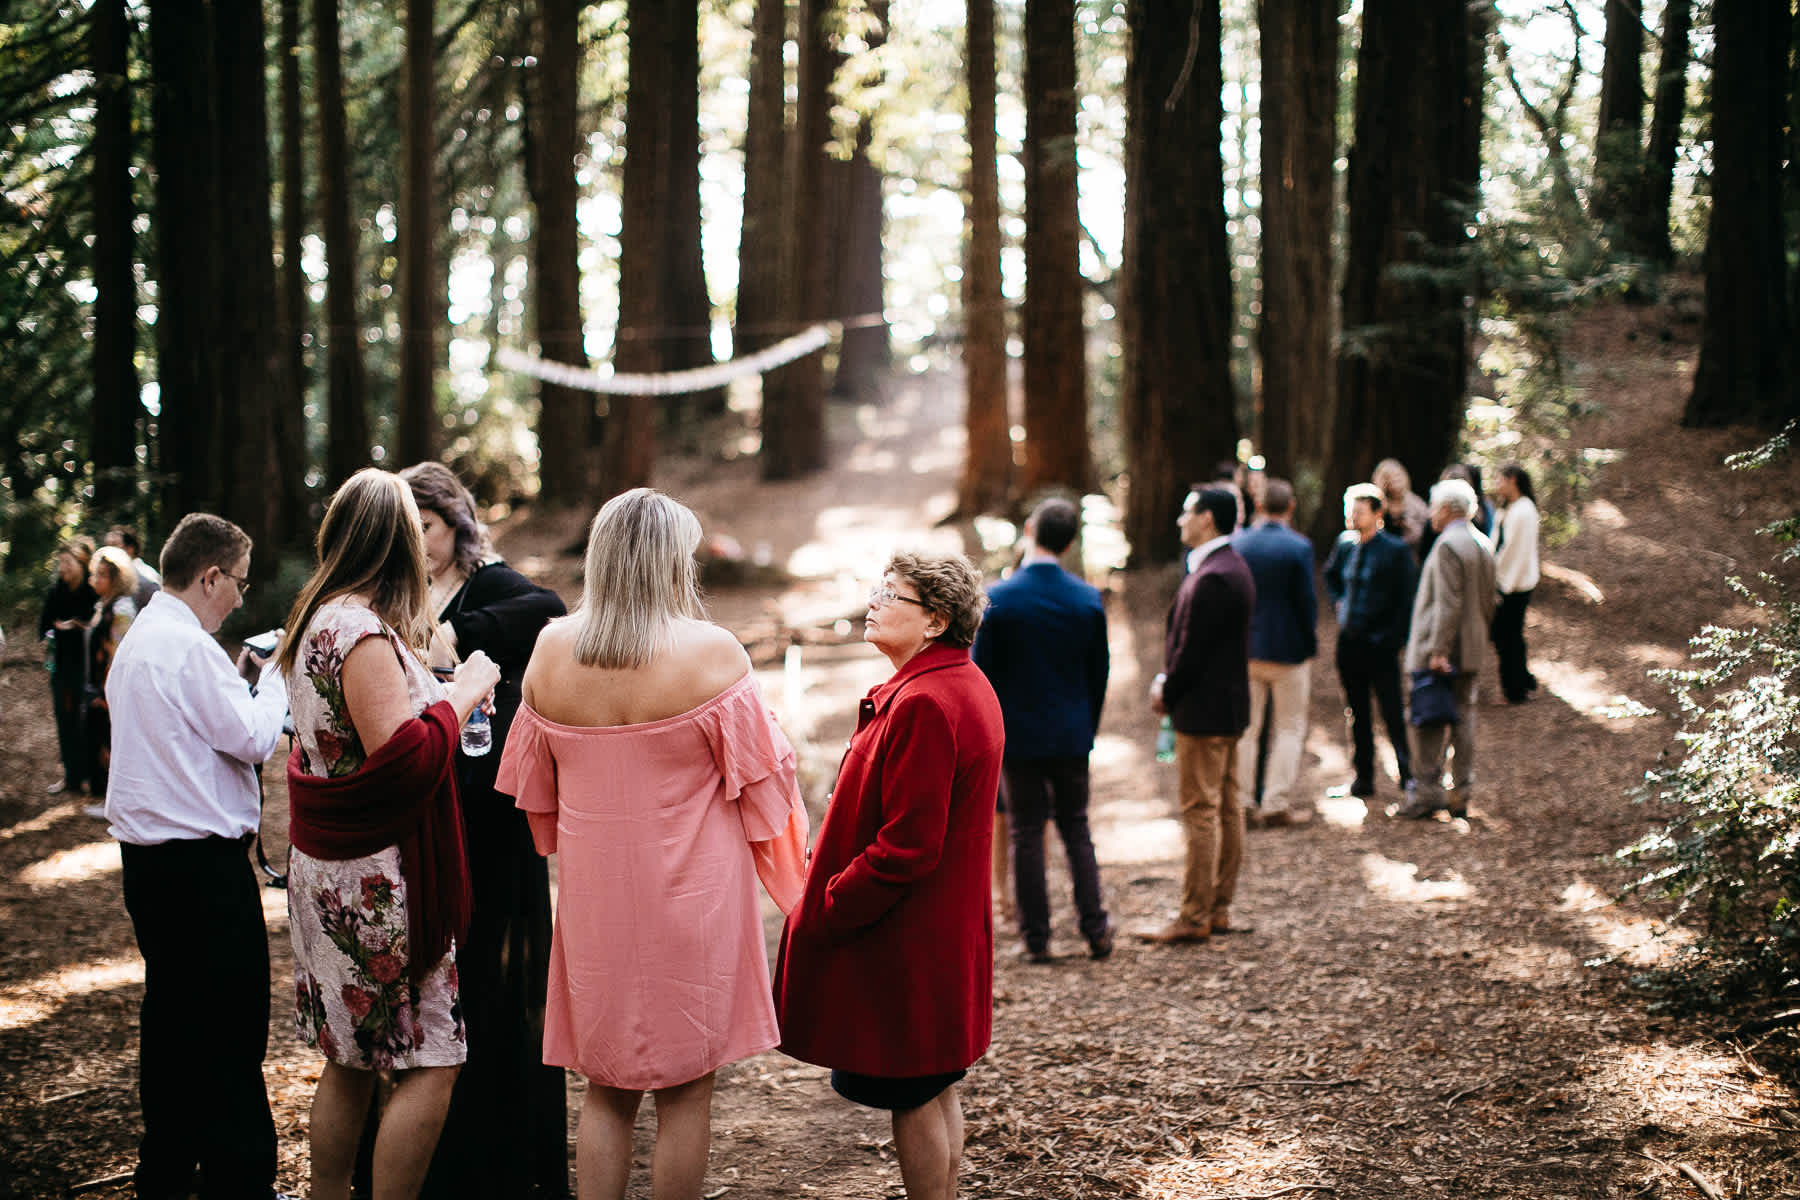 oakland-redwoods-summer-wedding-32